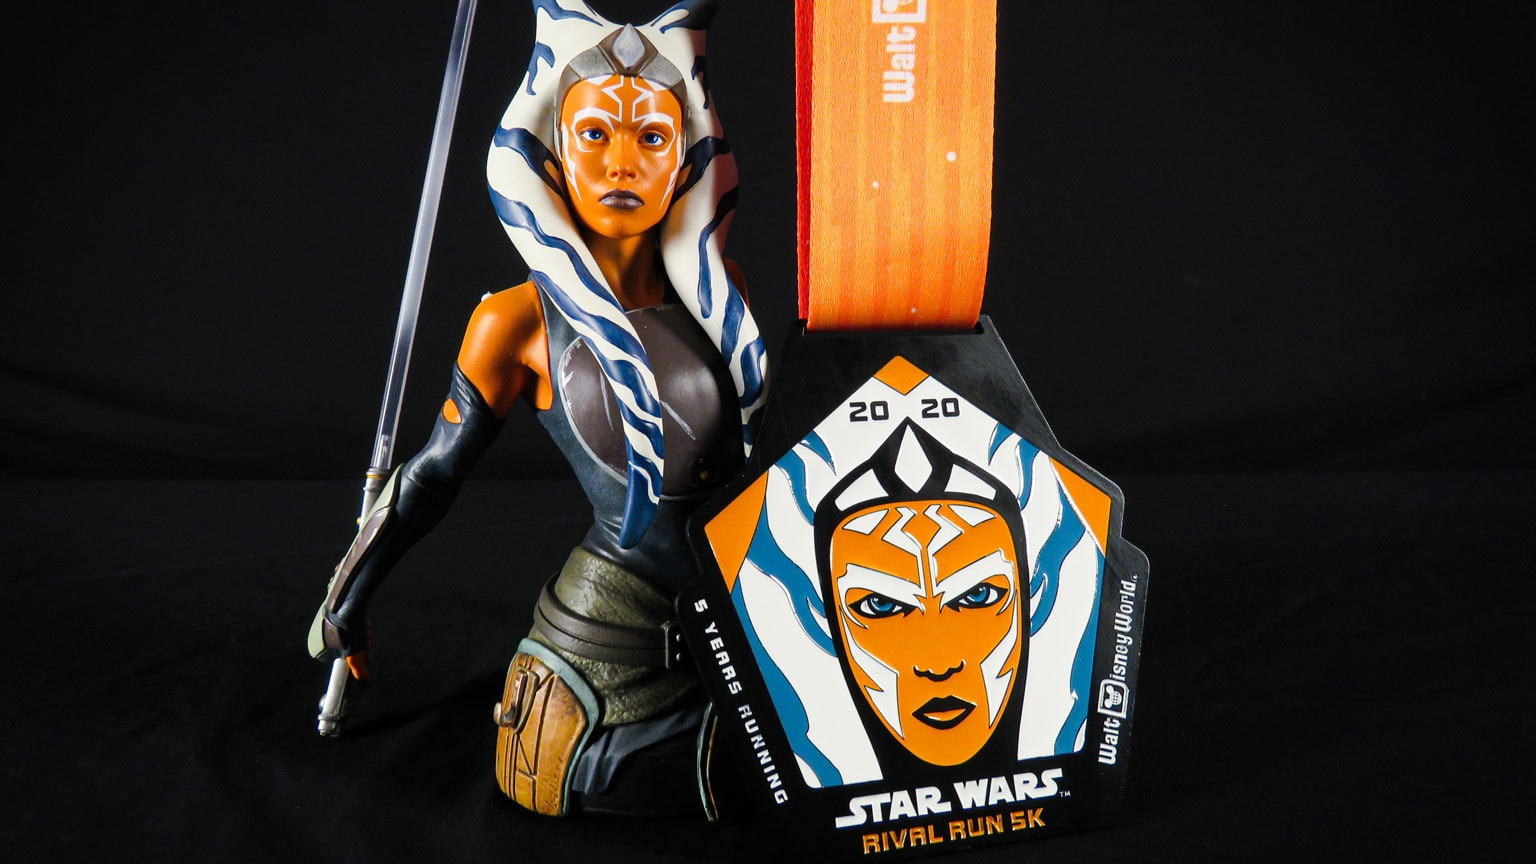 Ahsoka Tano, Yoda, and More Icons Star on runDisney's 2020 Star Wars Medals – Exclusive